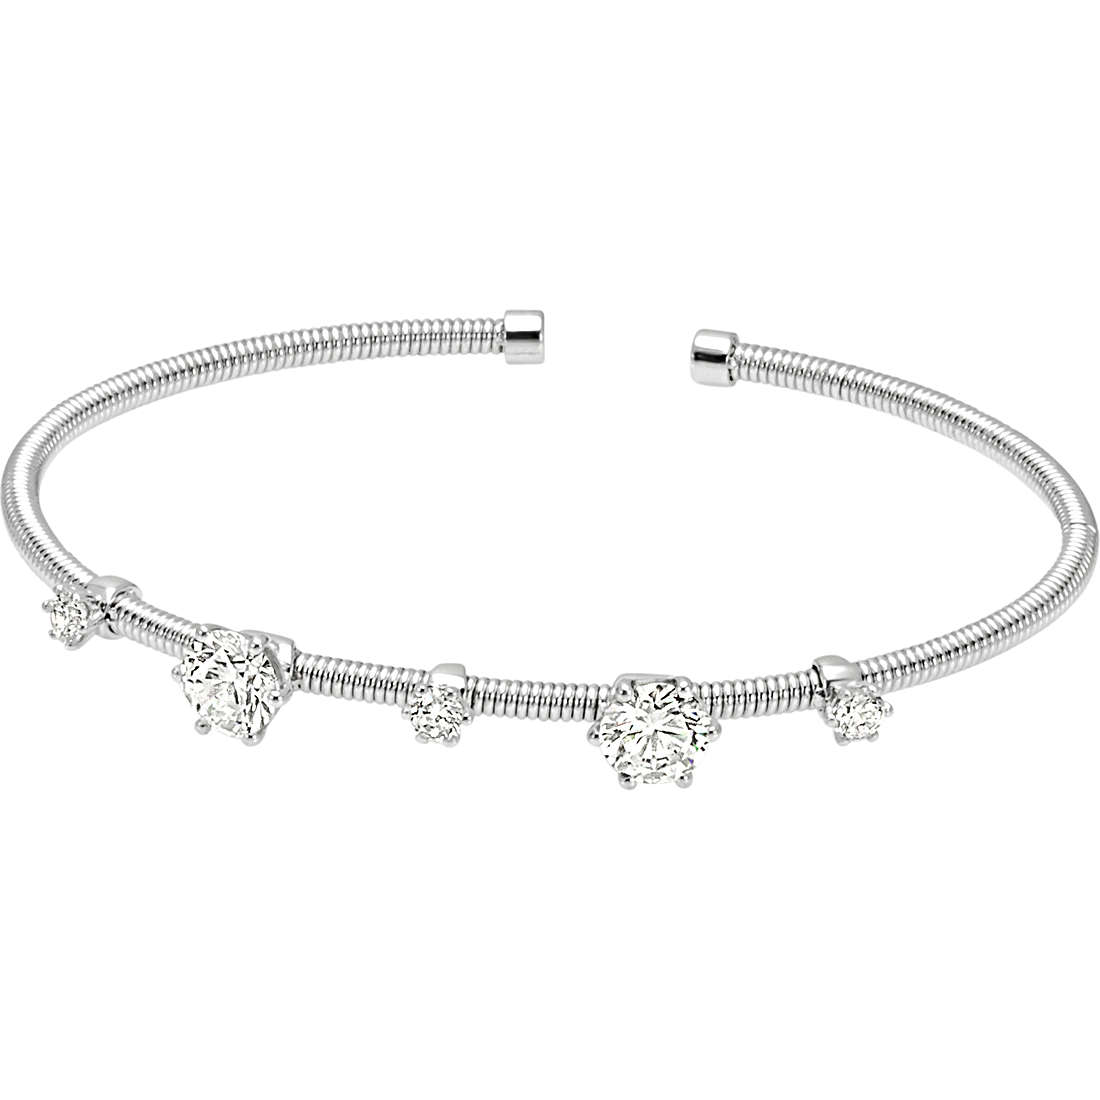 bracelet woman jewellery Bliss Silver Light 20061891